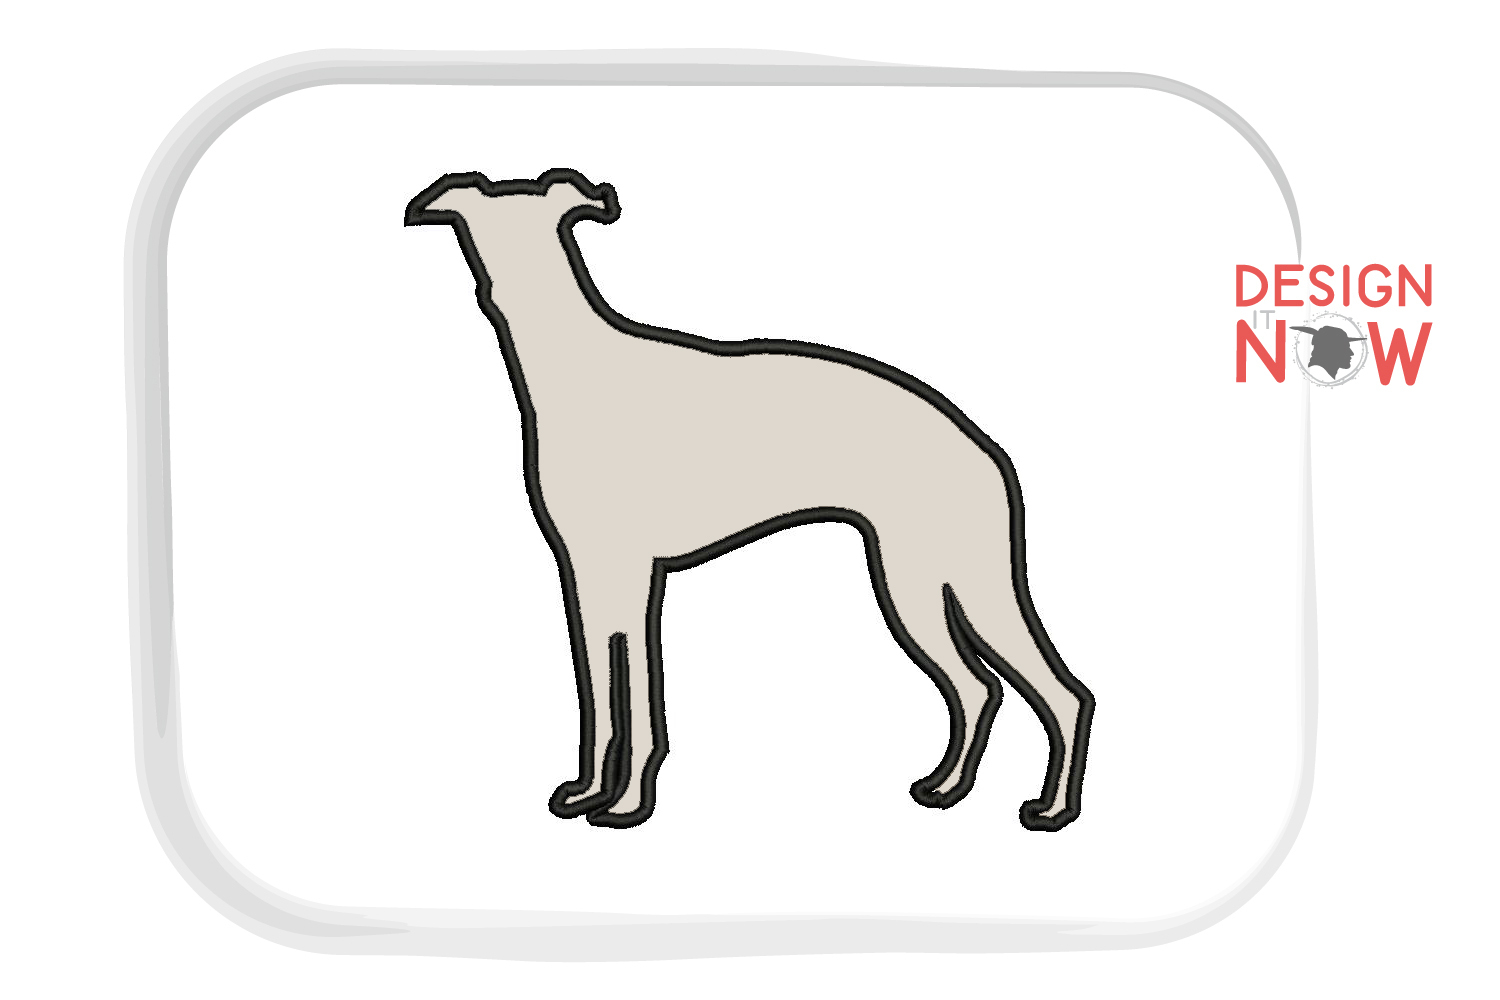 Whippet Dog Applique Design, Dog Embroidery Design example image 3